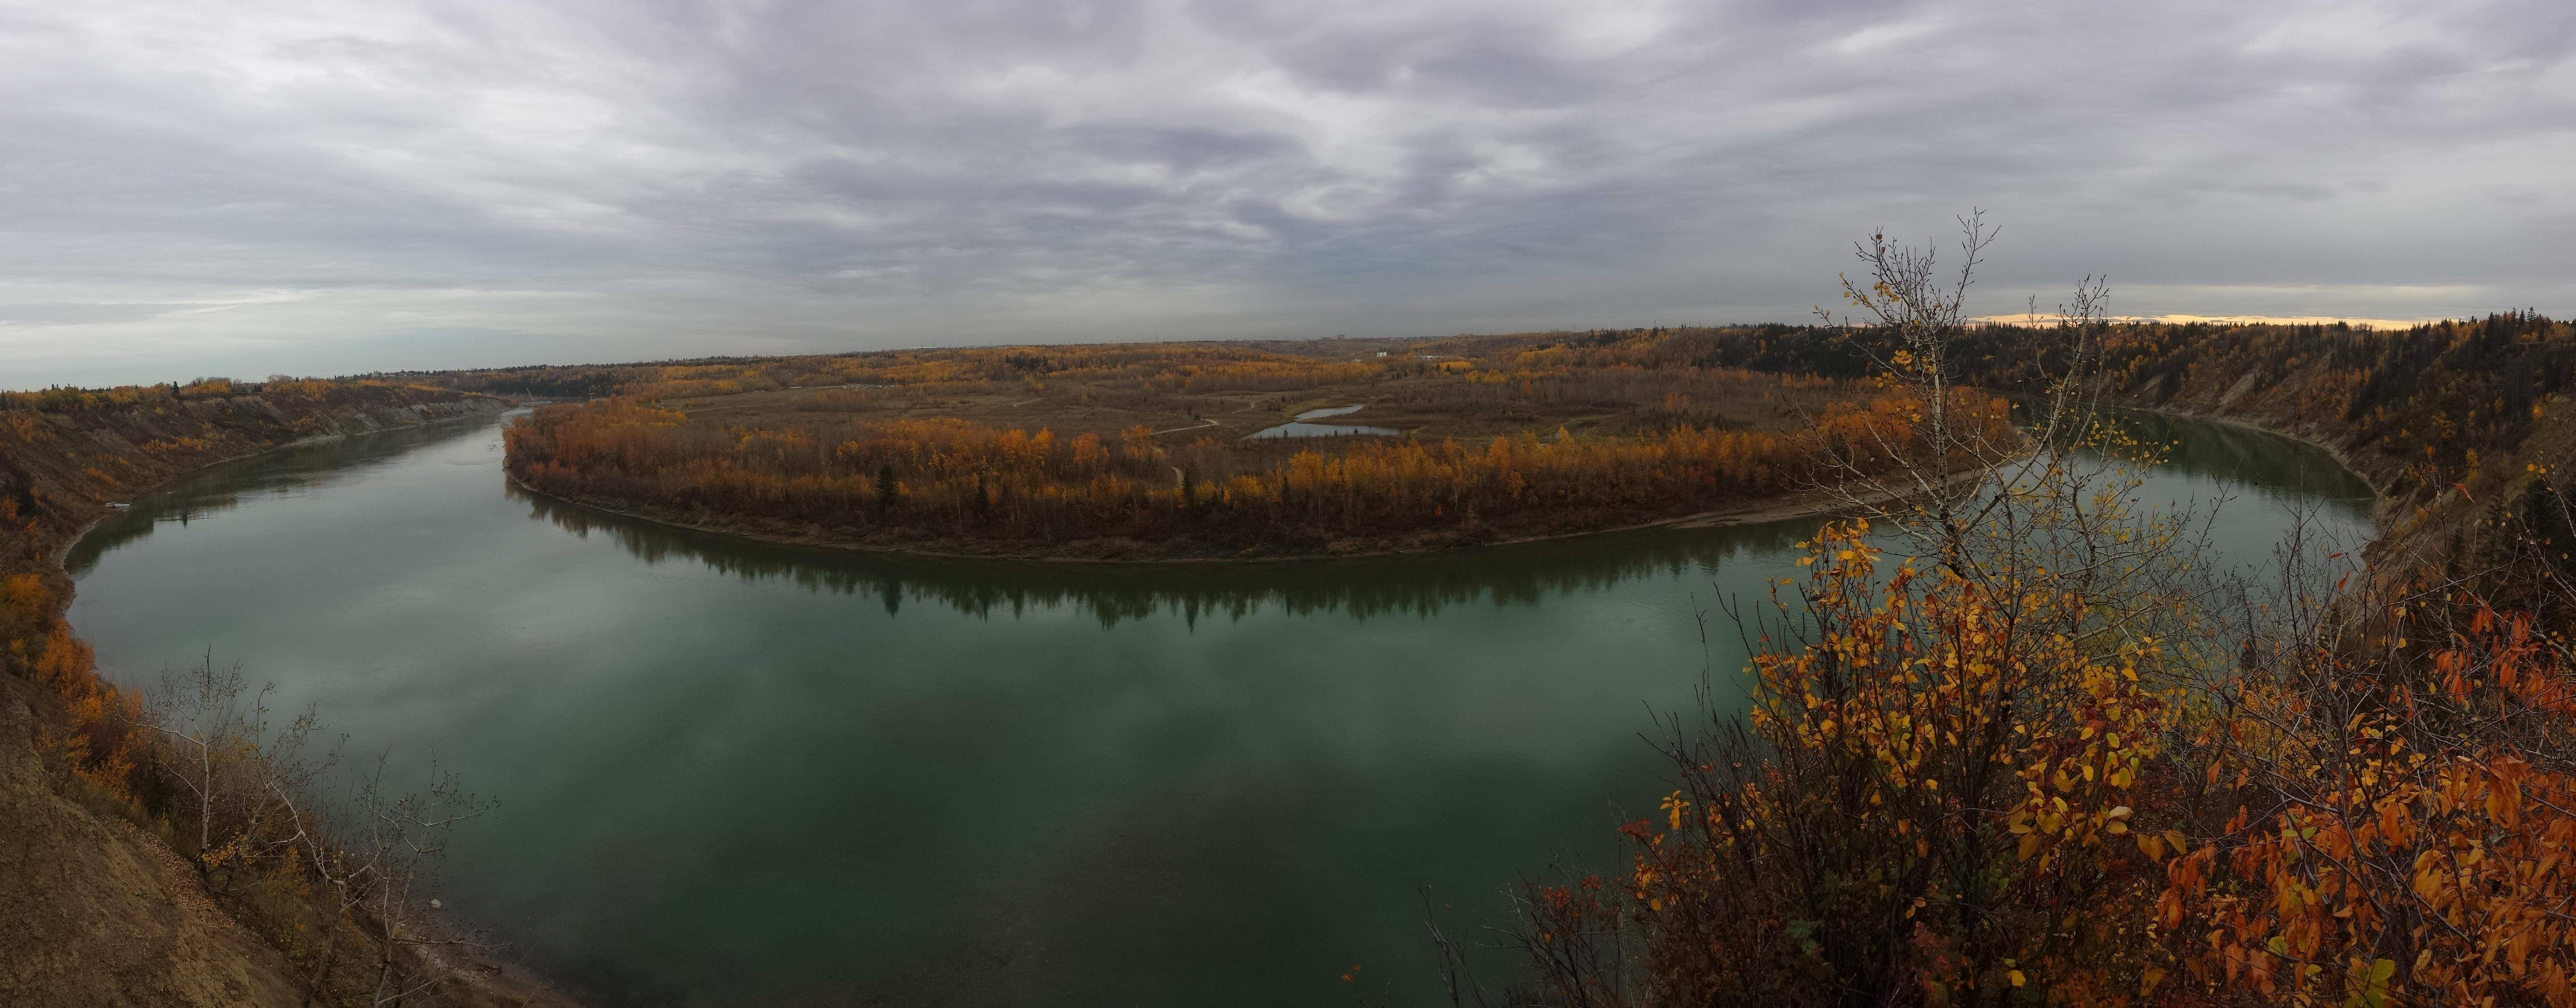 Fall Wallpaper Hd For Galaxy S4 Panoramic View Of Edmontons River Valley This Fall 4k